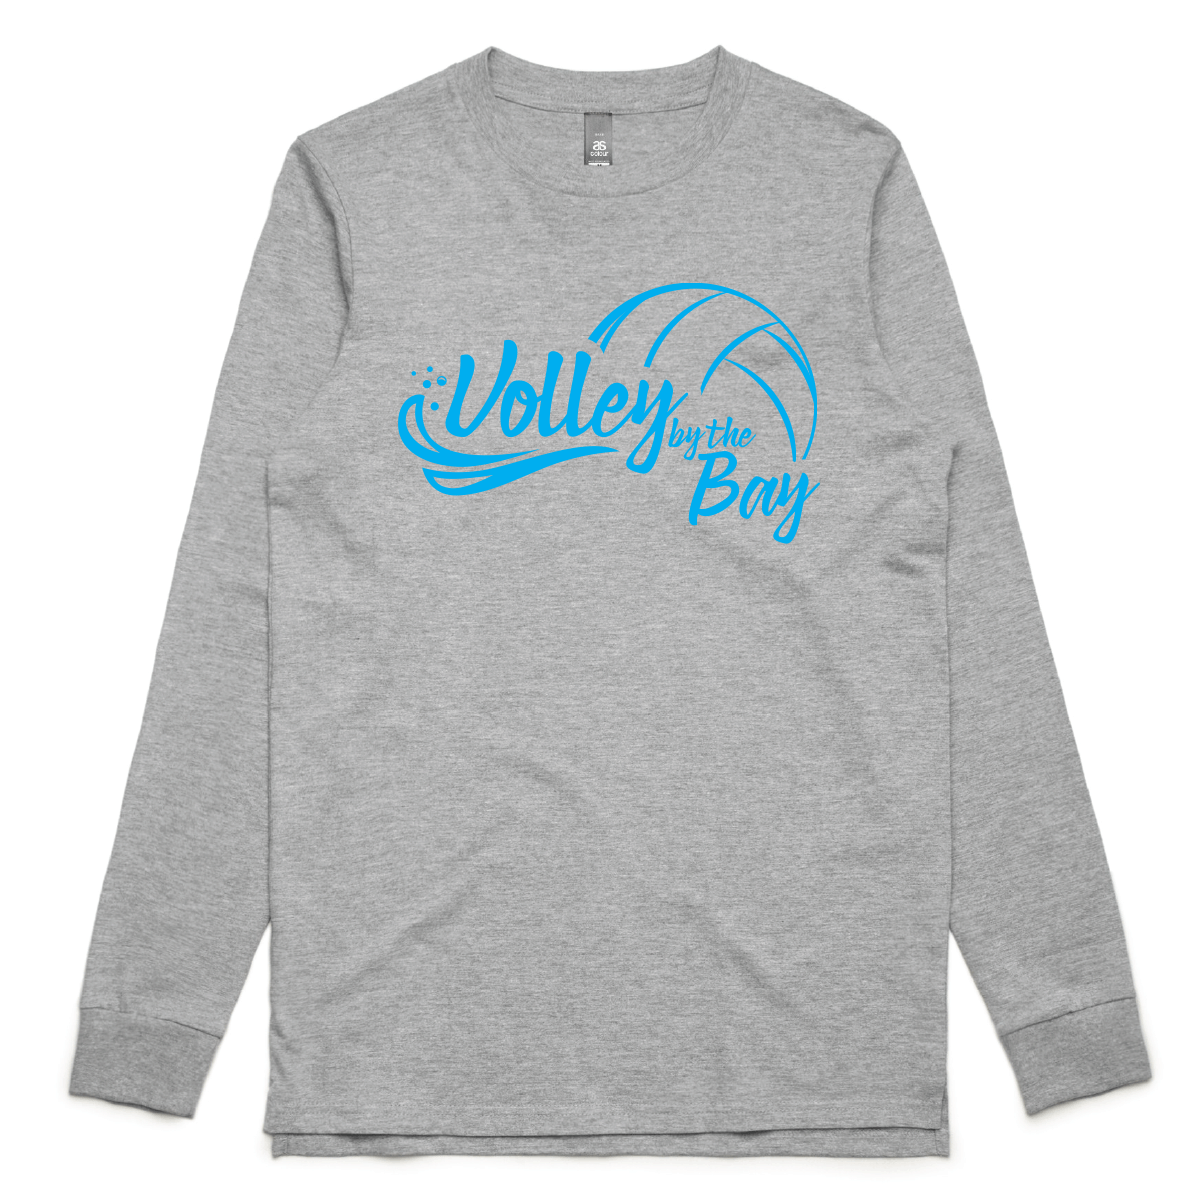 Volley by the Bay L/S Shirt 1